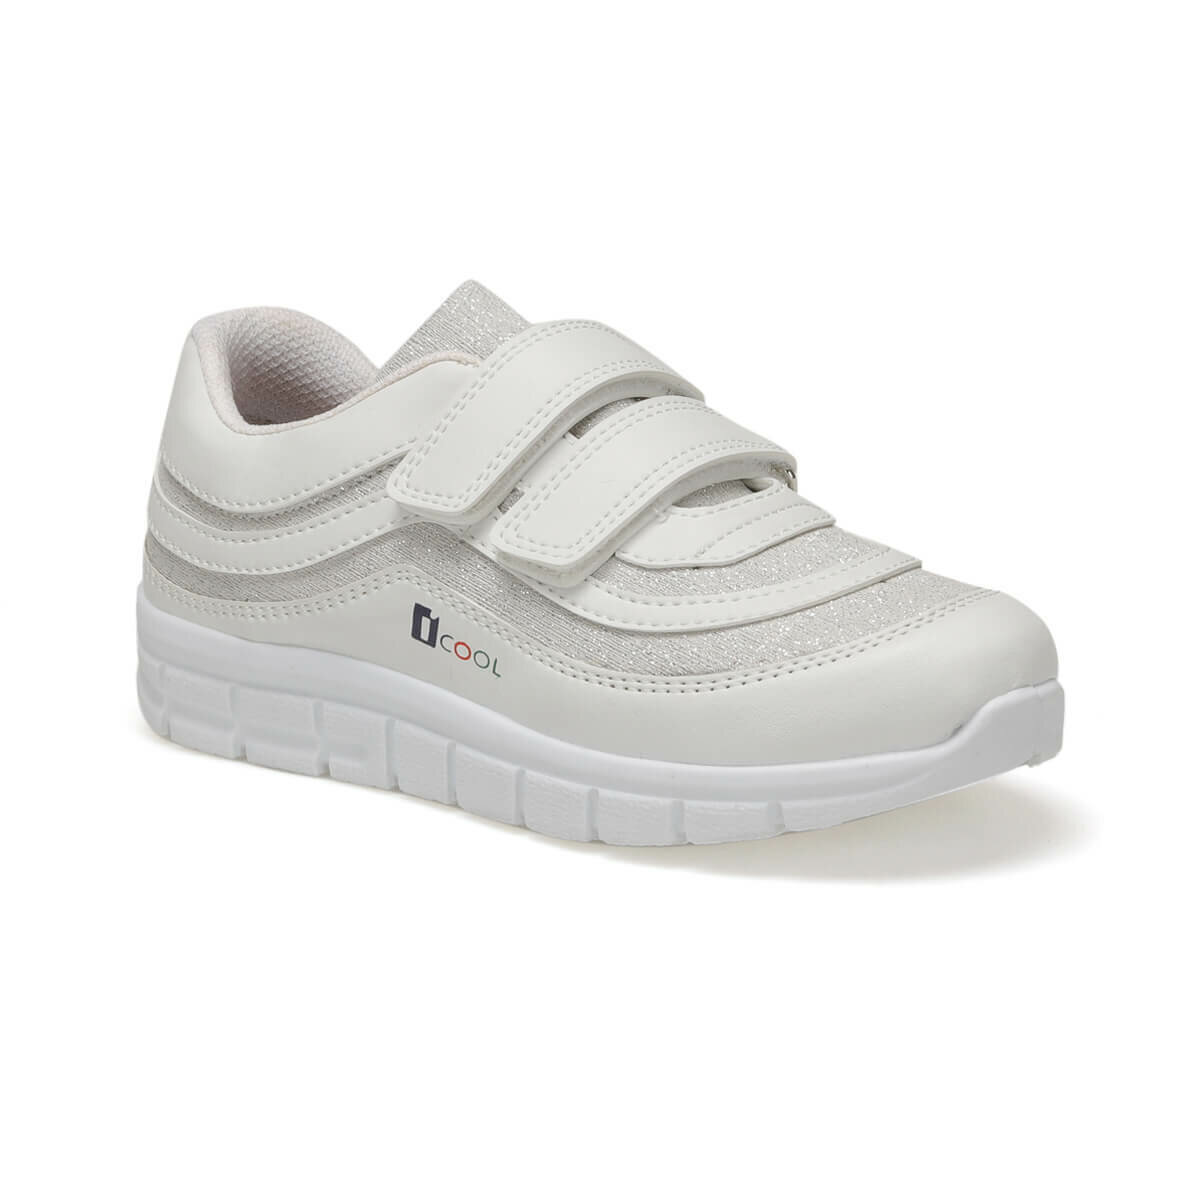 FLO PASSION White Female Child Sneaker Shoes I-Cool